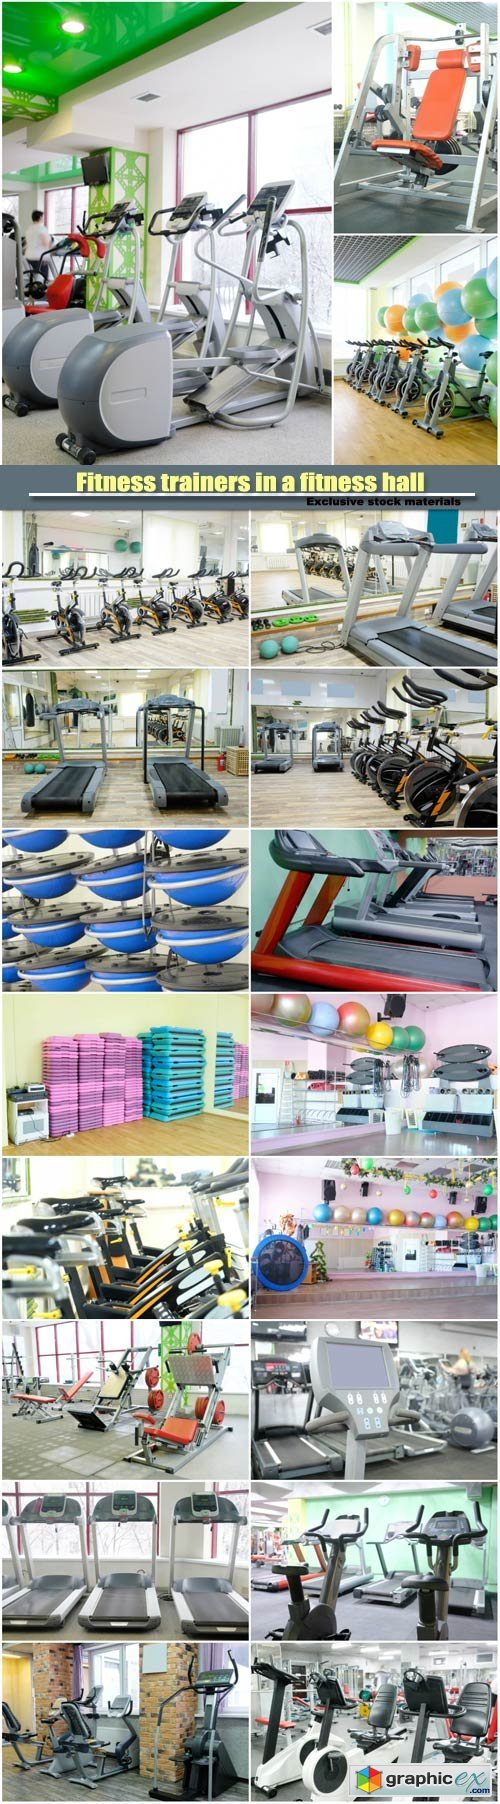 Fitness trainers in a fitness hall